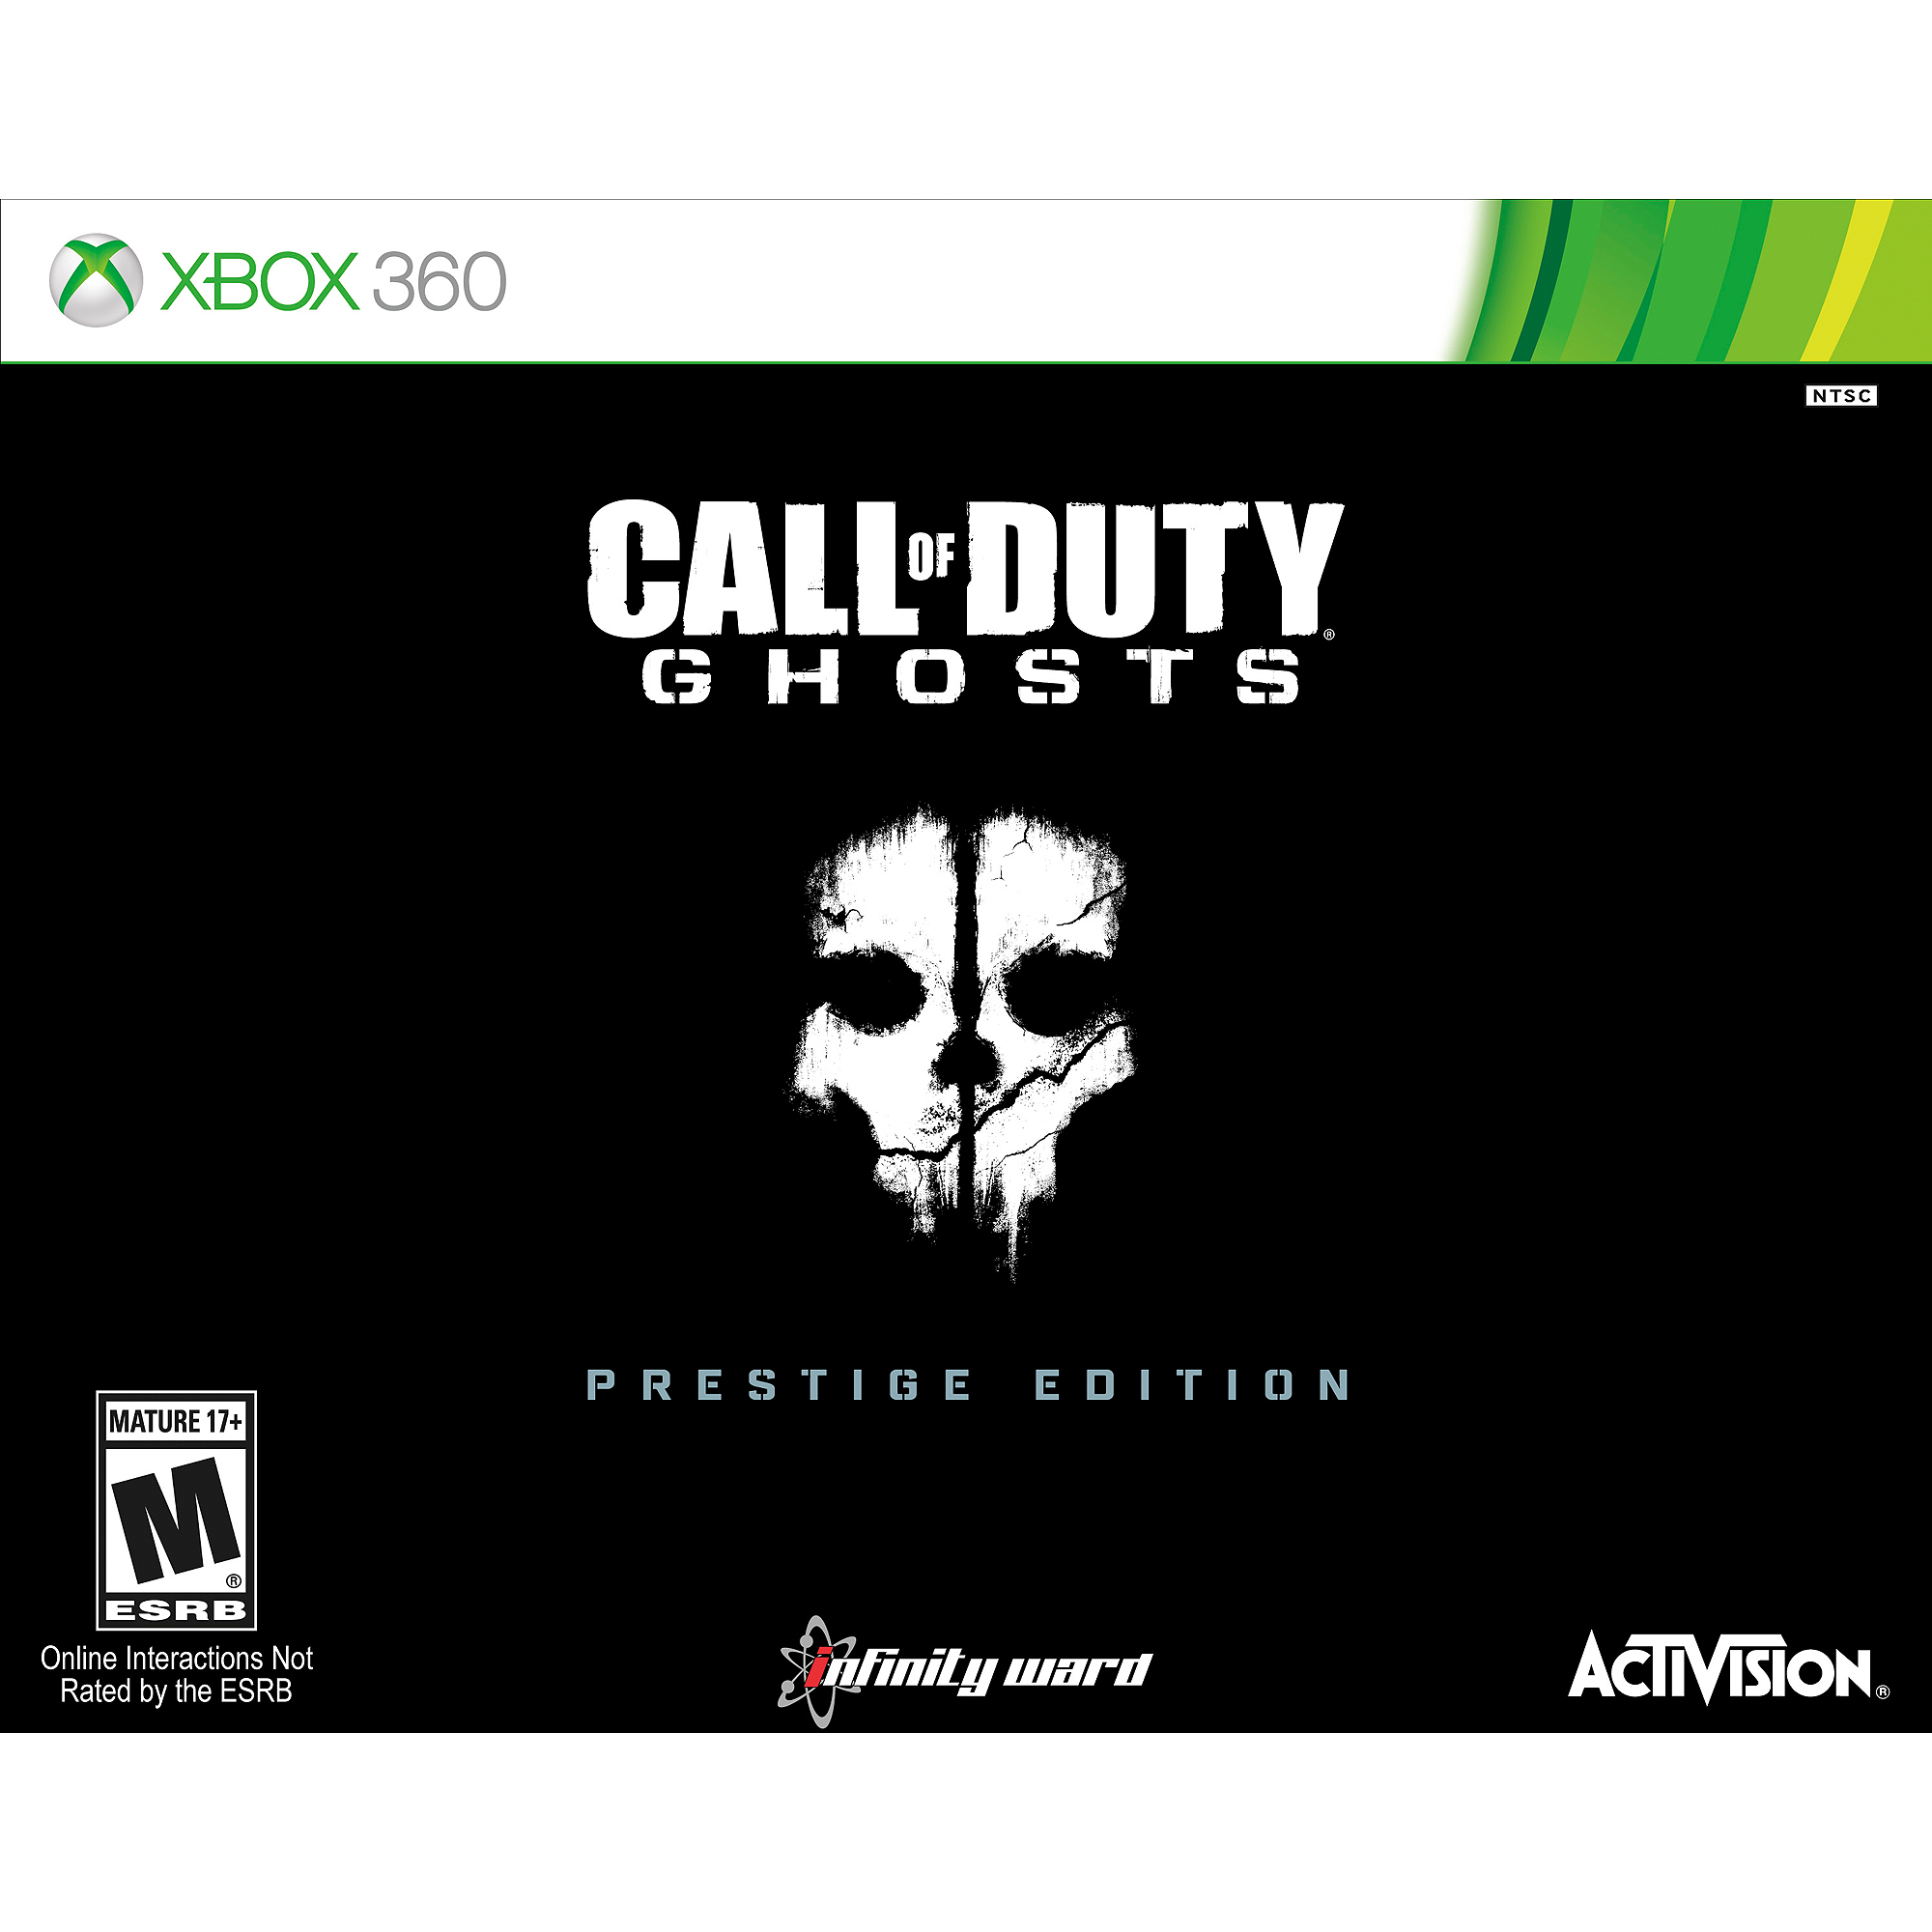 Call of Duty Ghosts Prestige Edition (Xbox 360)